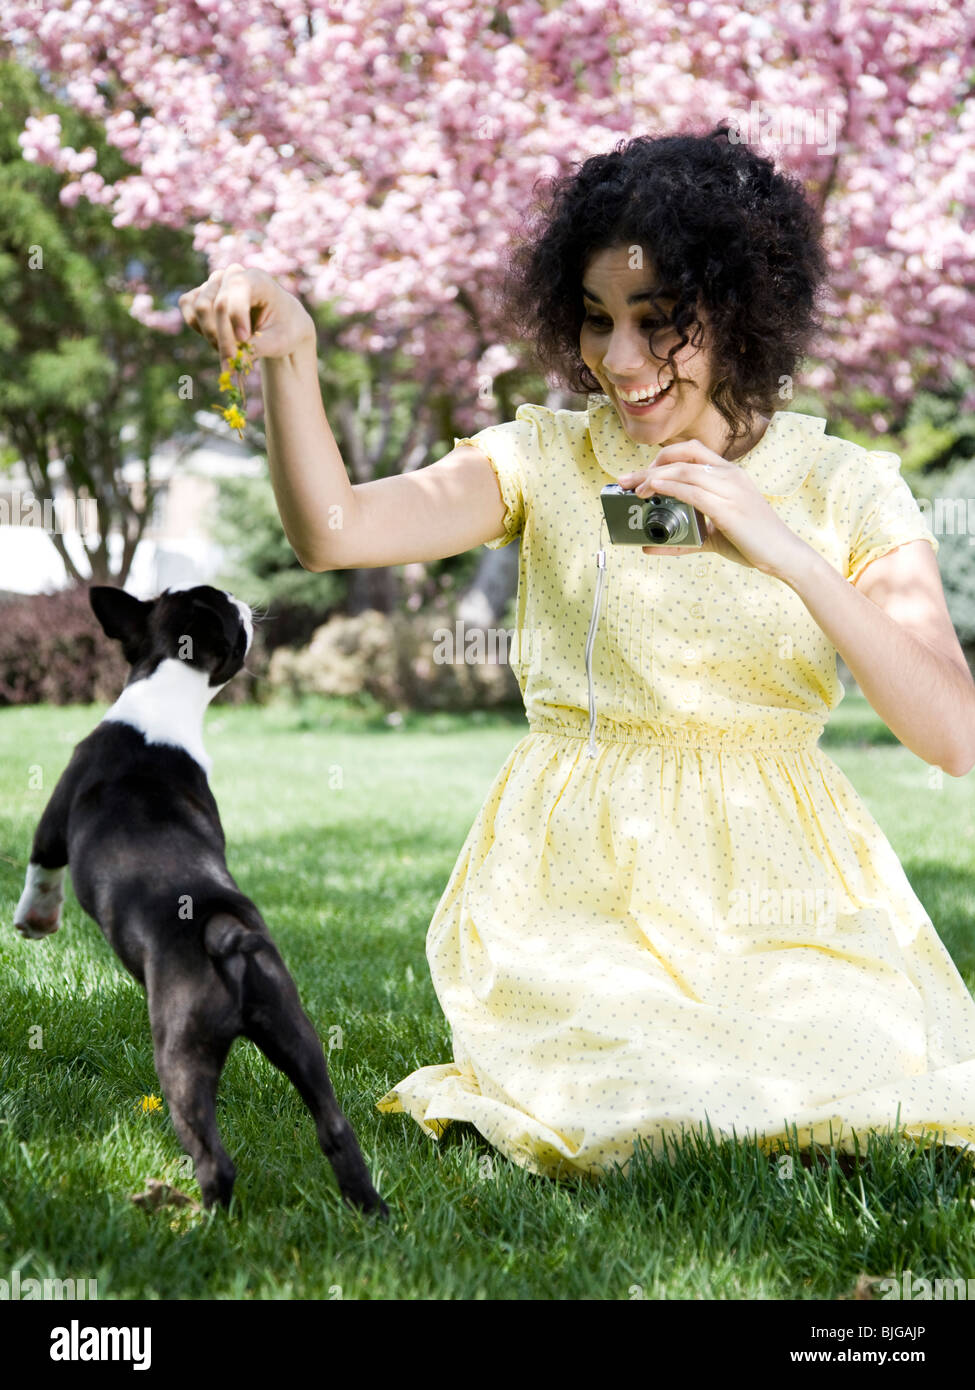 woman in a yellow dress taking photos - Stock Image